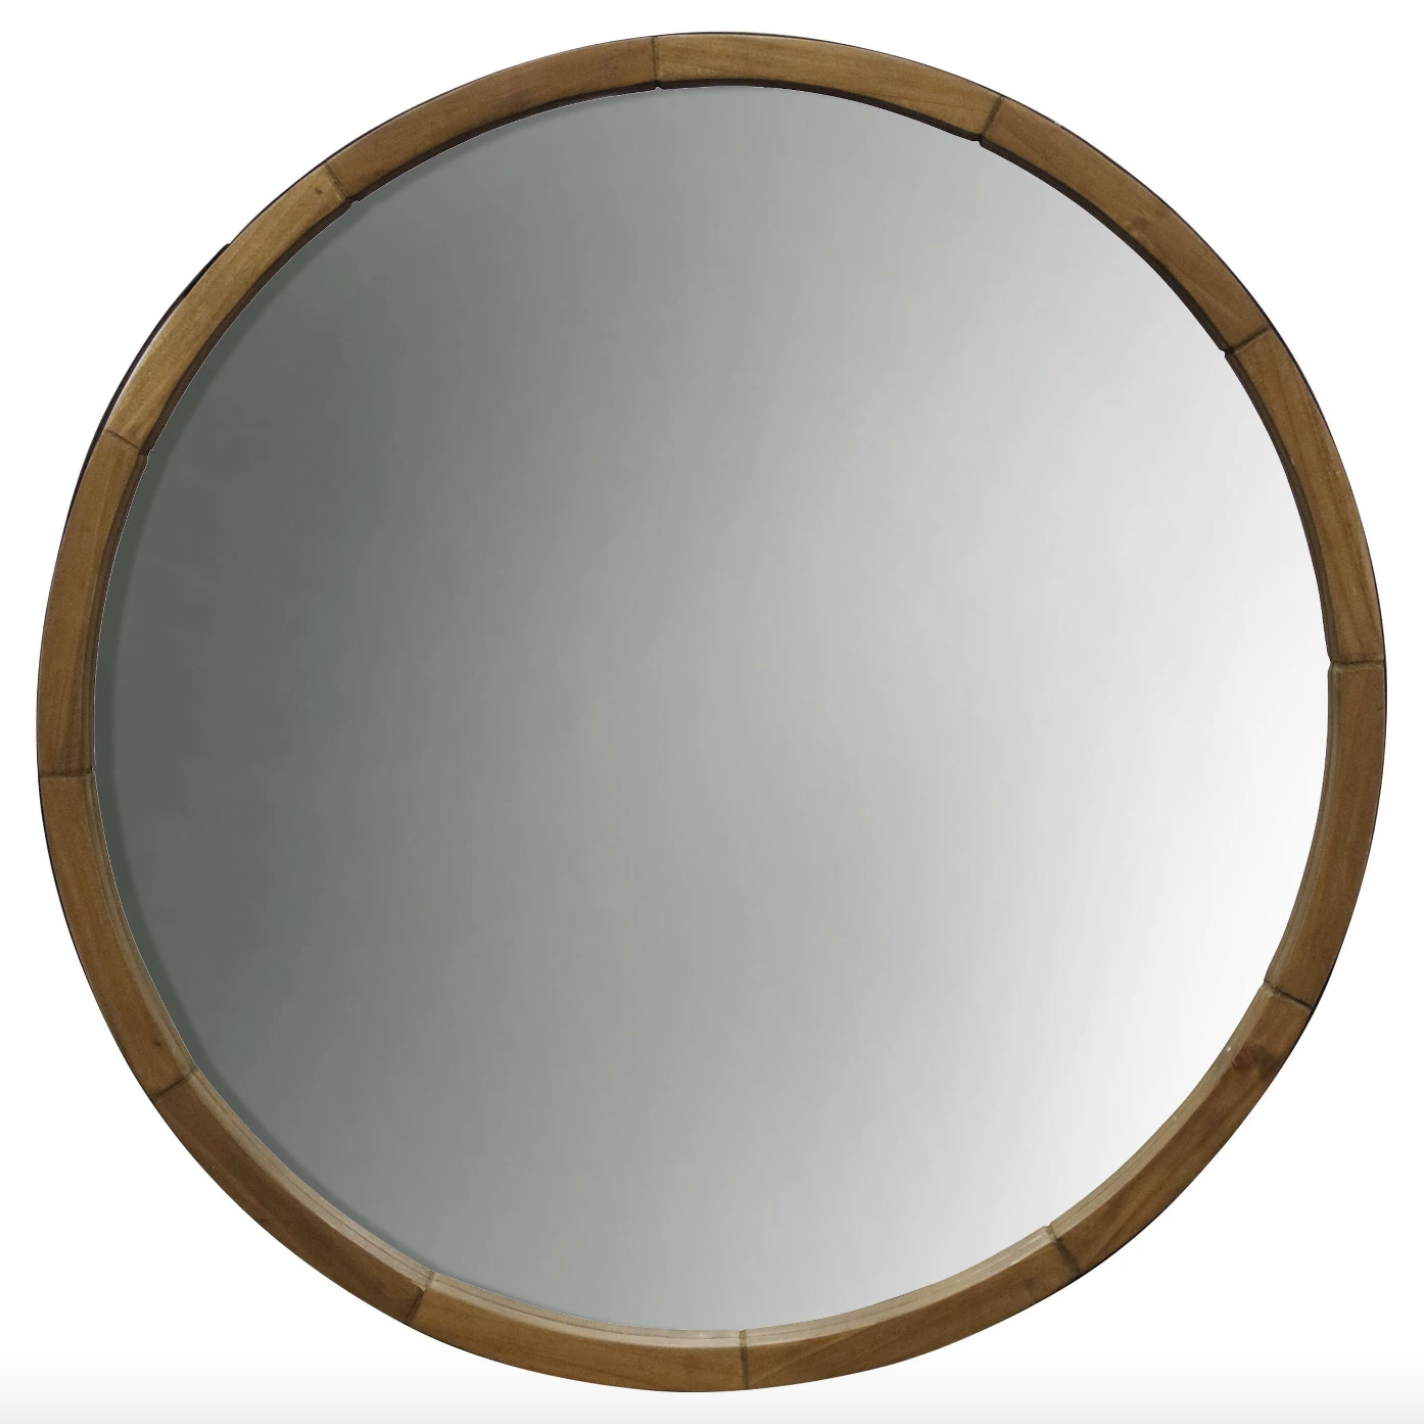 "Wood Barrel - Round 23.5"" mirror, $45; Target"